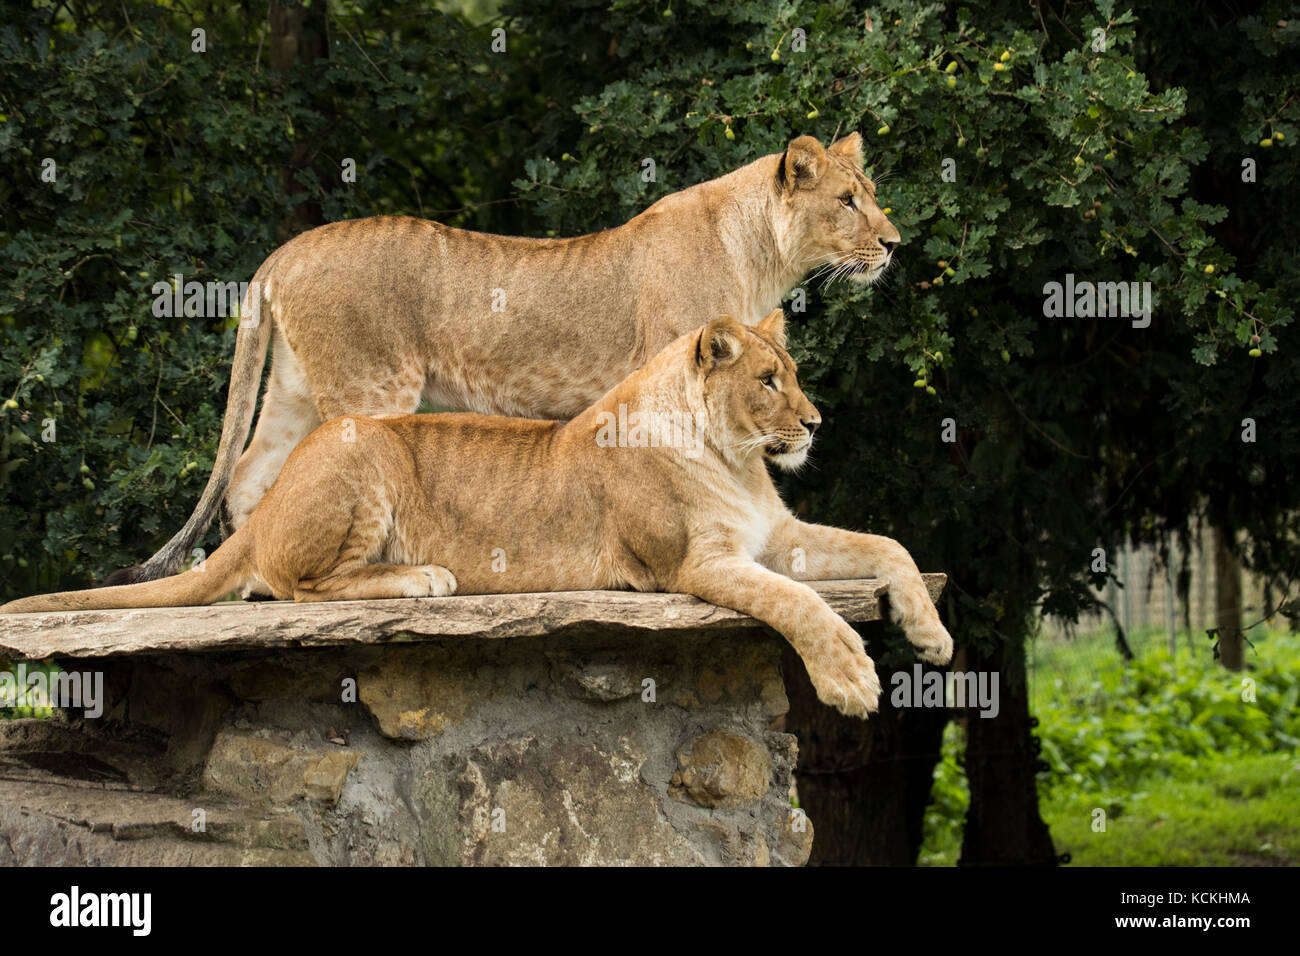 Two lionesses, one standing, one lying down - Stock Image